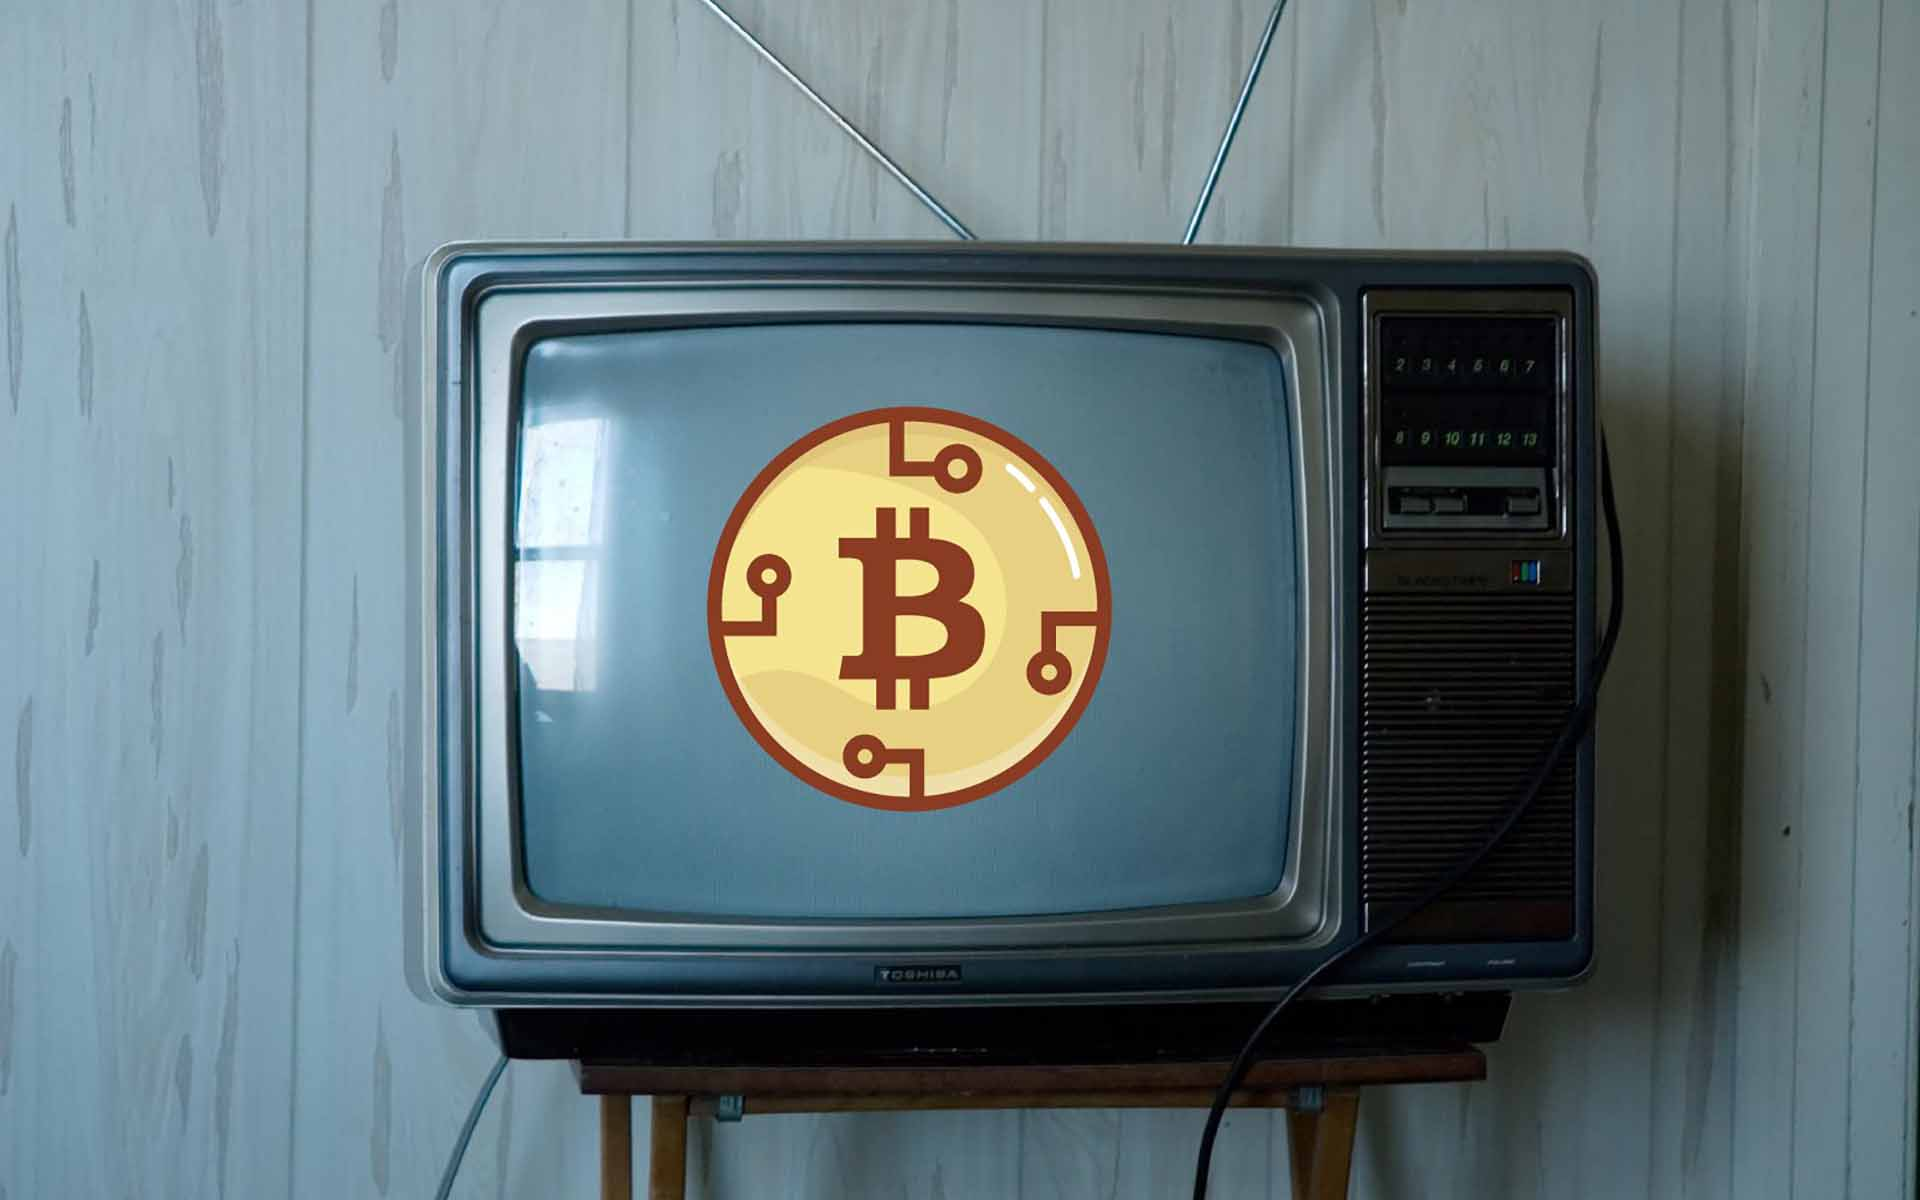 Cryptocurrency Personality Crypto Crow Gets TV Series on CBS